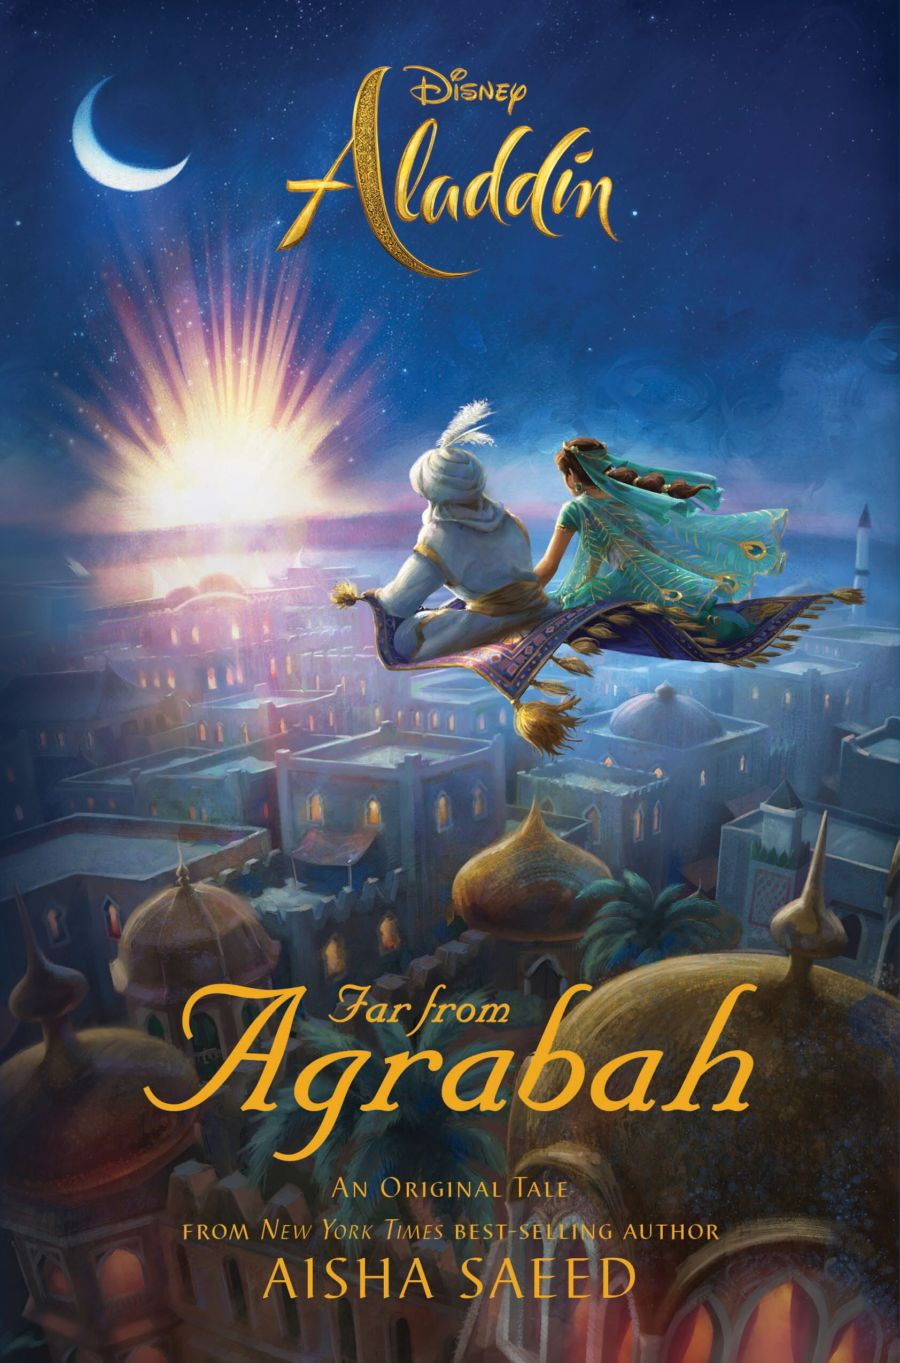 Enter To Win An Aladdin Far From Agrabah Prize Back